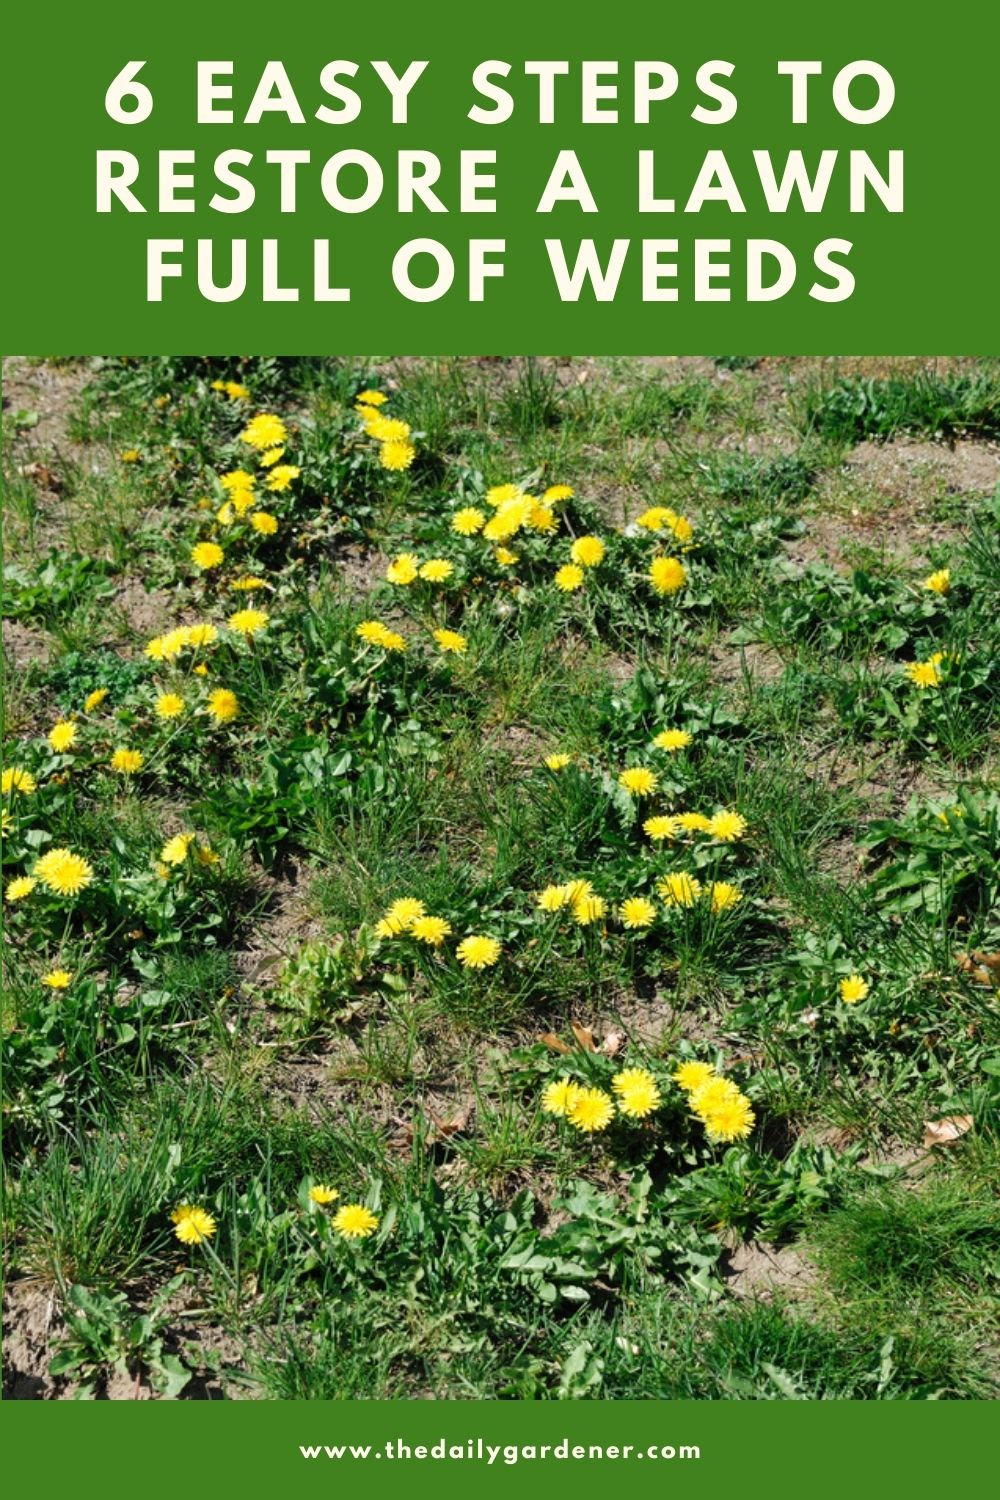 How To Treat Your Own Lawn For Weeds : The Natural Way To ...